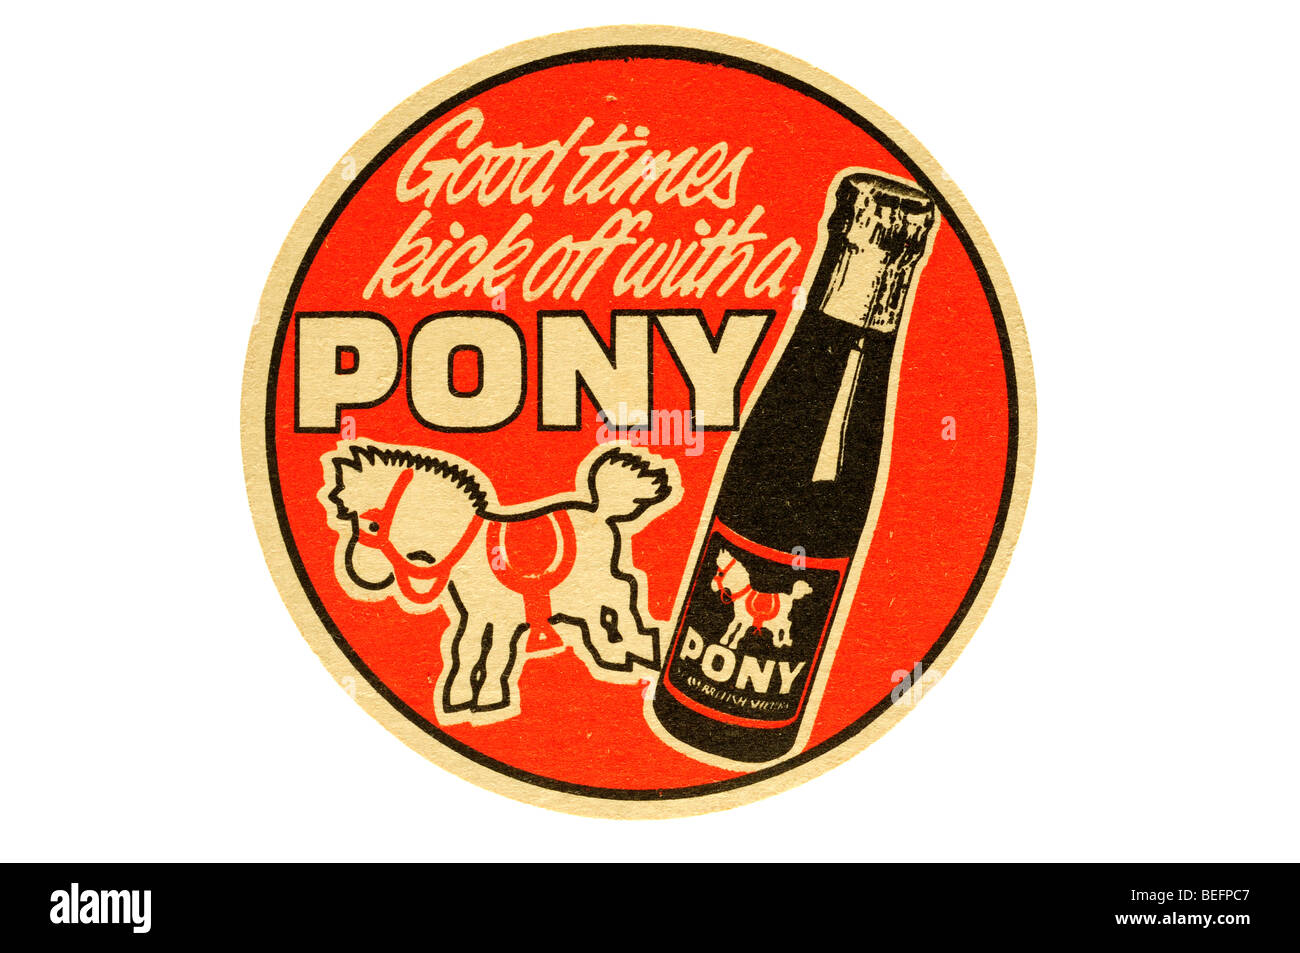 good times kick of with a pony - Stock Image